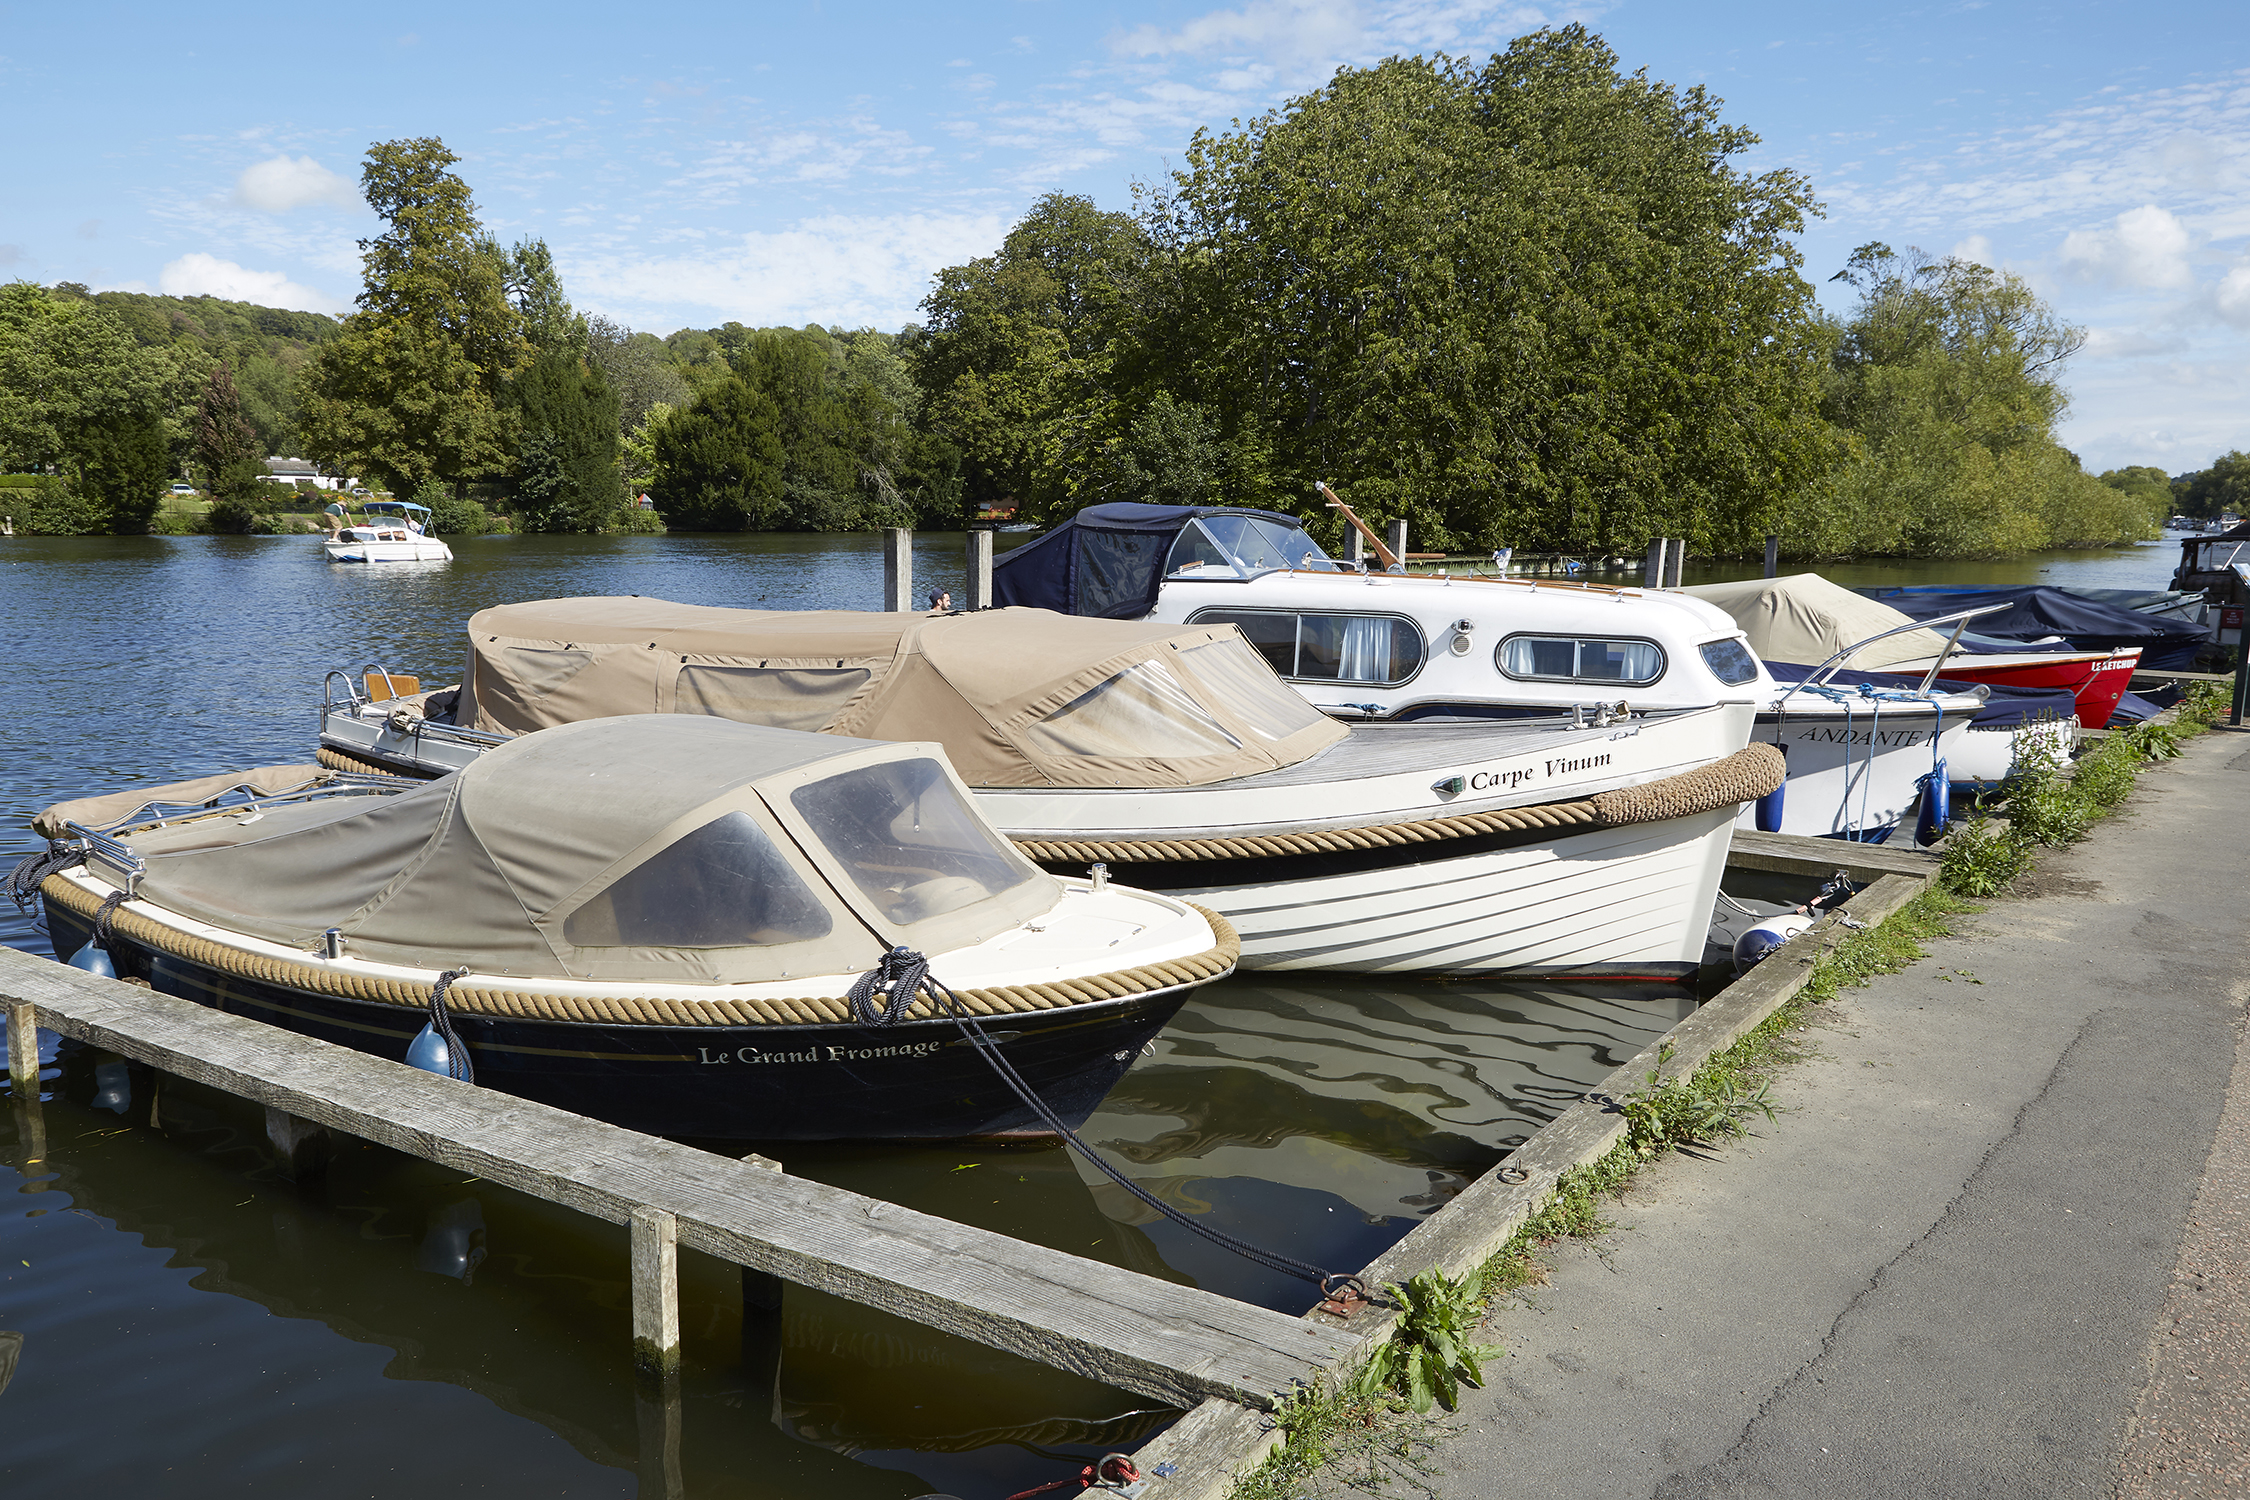 Henley Town Council - boat moored in Henley